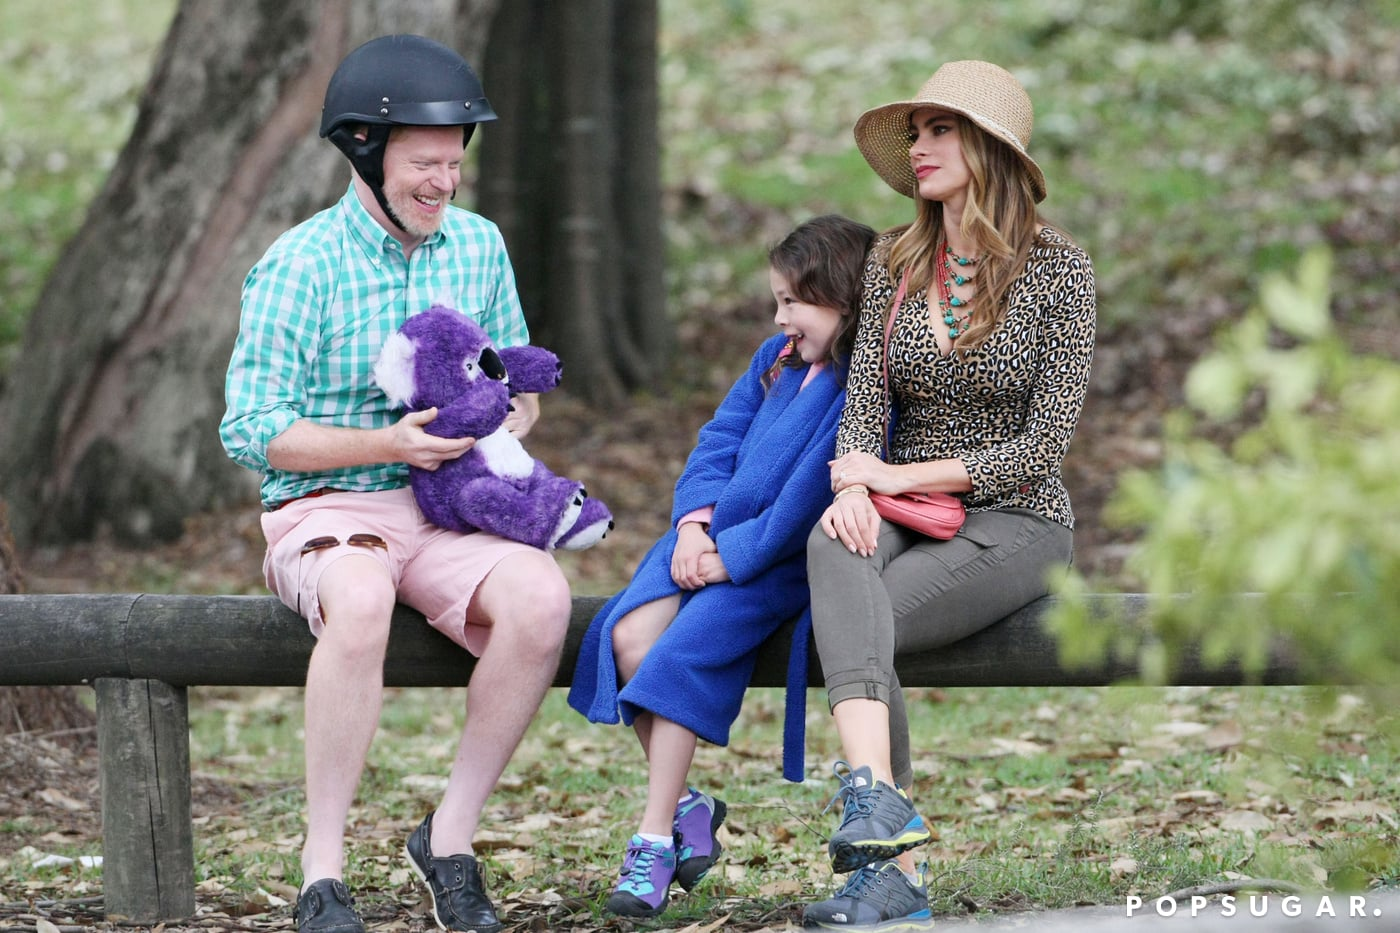 Modern Family stars spent Monday filming a scene in Sydney, Australia. Jesse Tyler Ferguson and Sofia Vergara sat with Aubrey Anderson-Emmons and played with a purple koala bear.